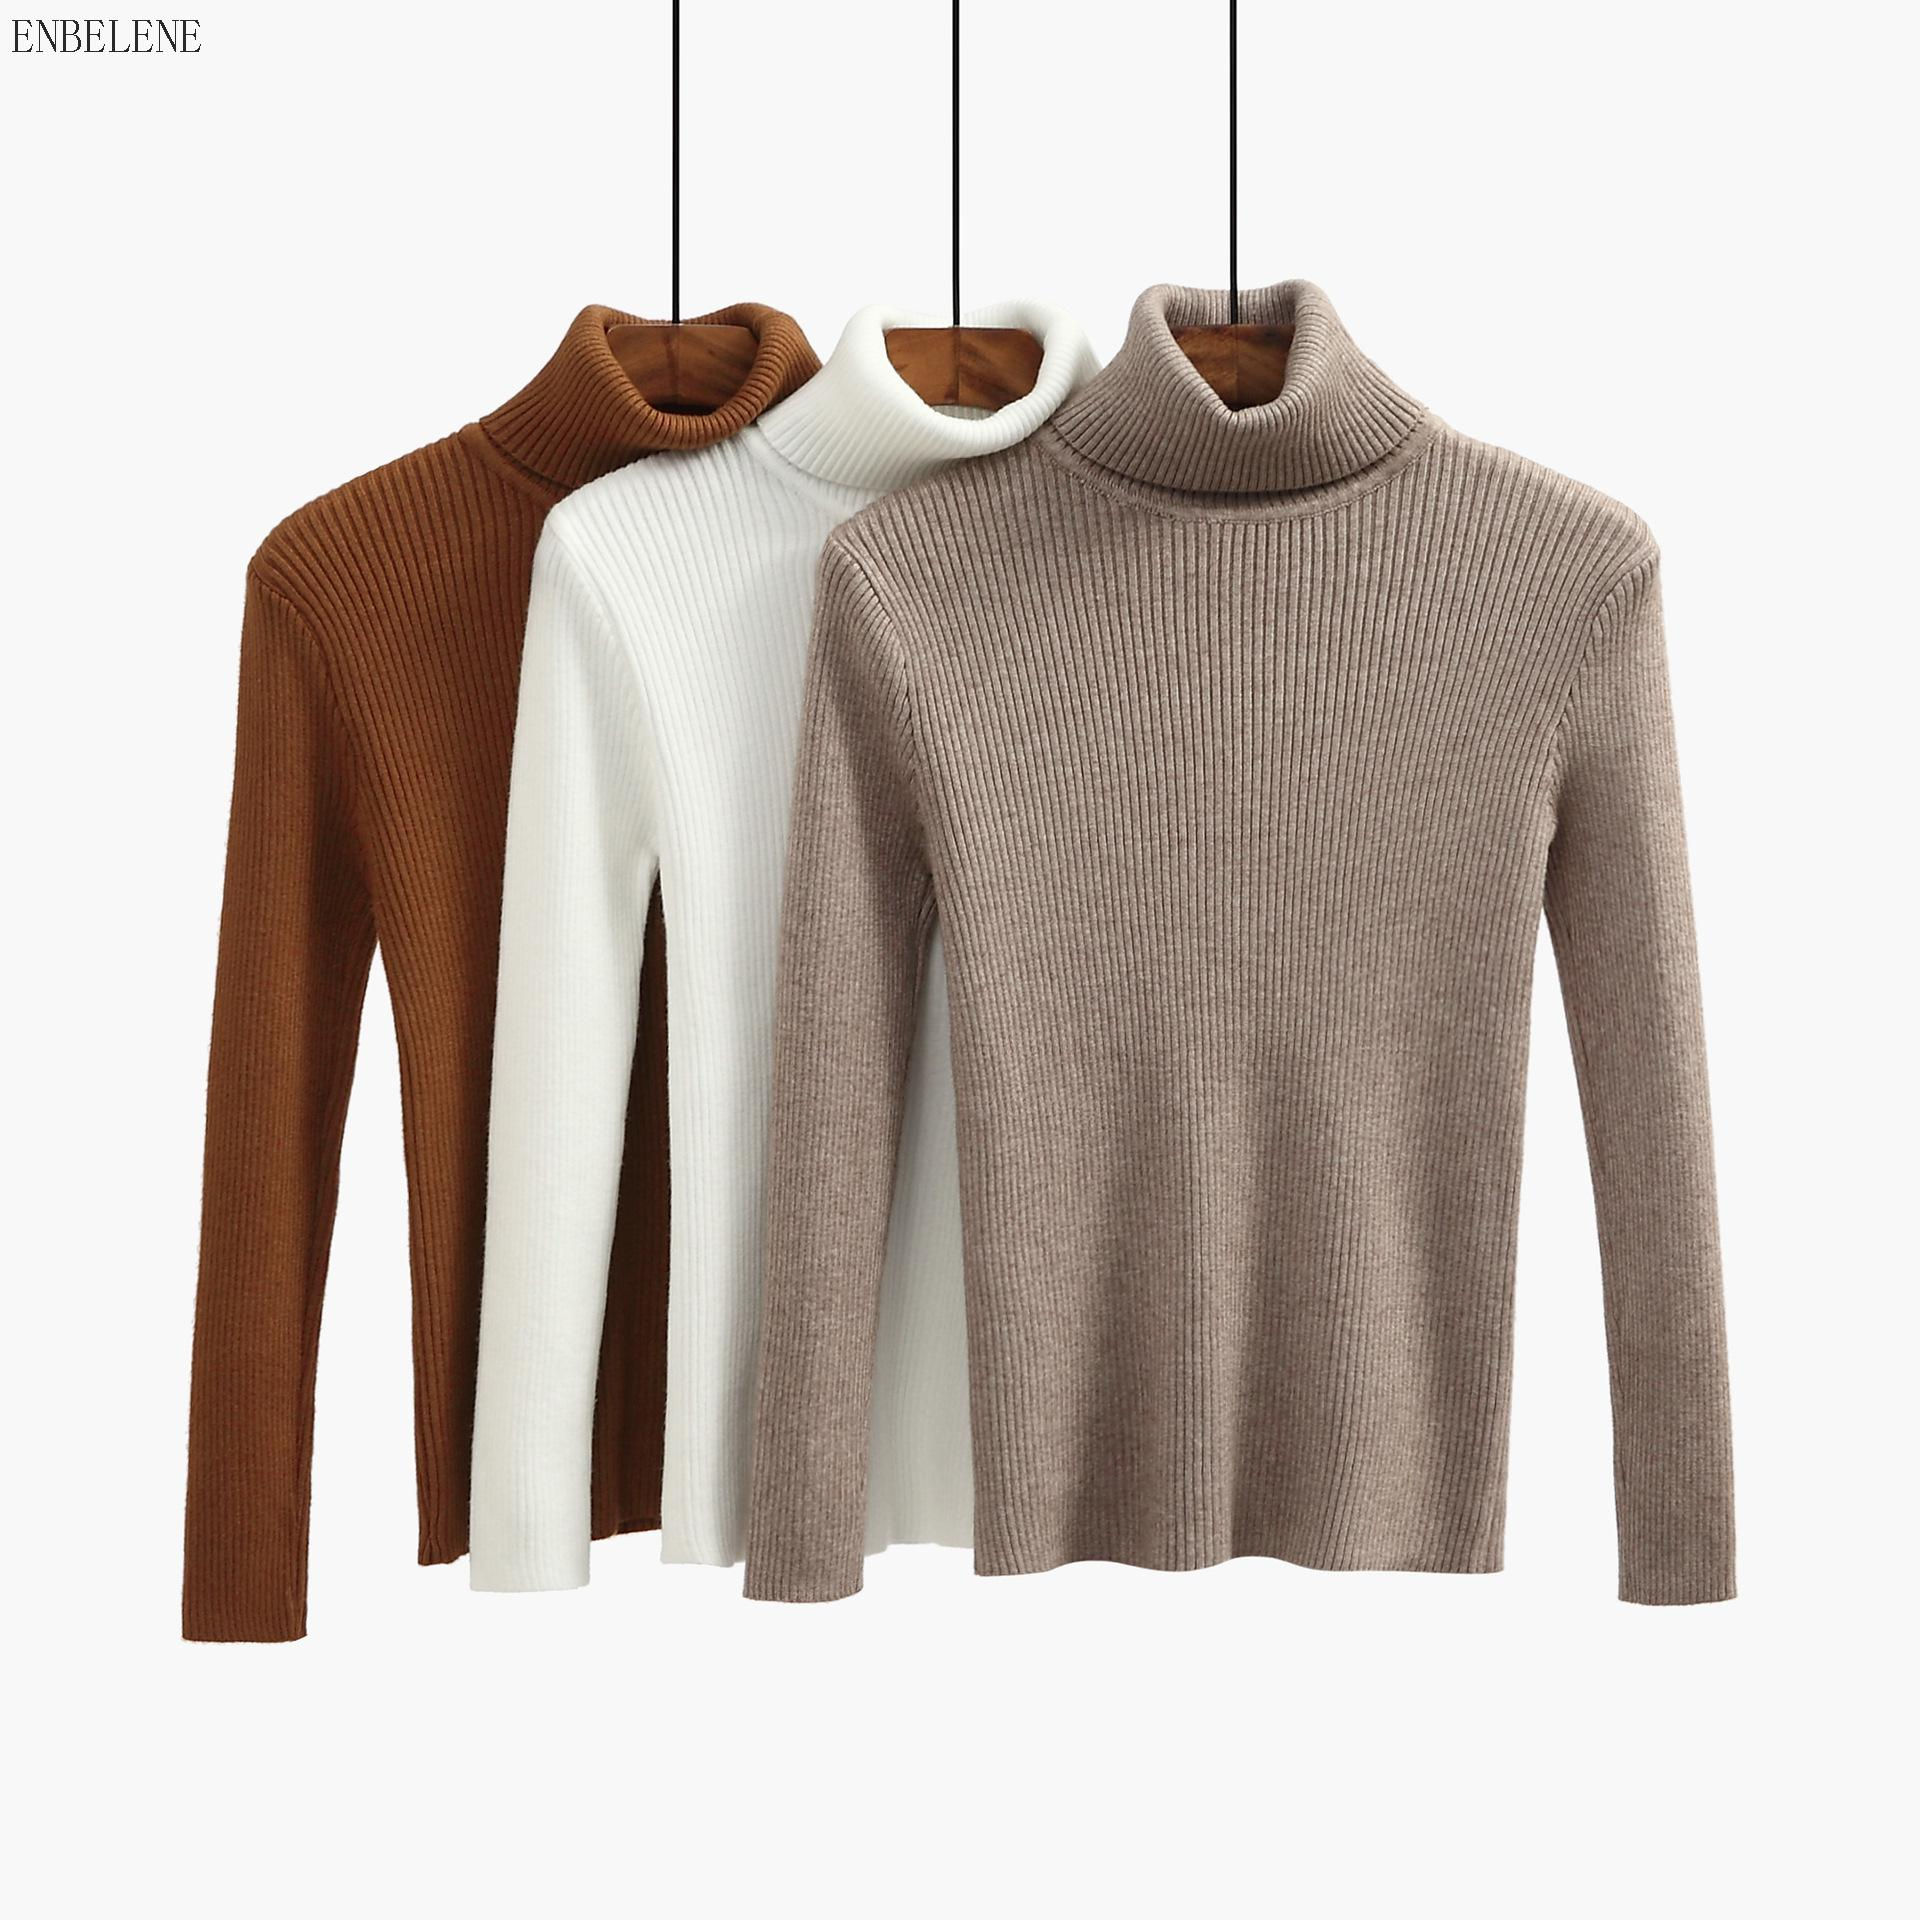 2019 Winter Thicken Knitted Bottoming Shirts Women Solid Khaki Wine Red Turtleneck Sweaters For Female Slim Pullover Tops Gj268 Fashionable And Attractive Packages